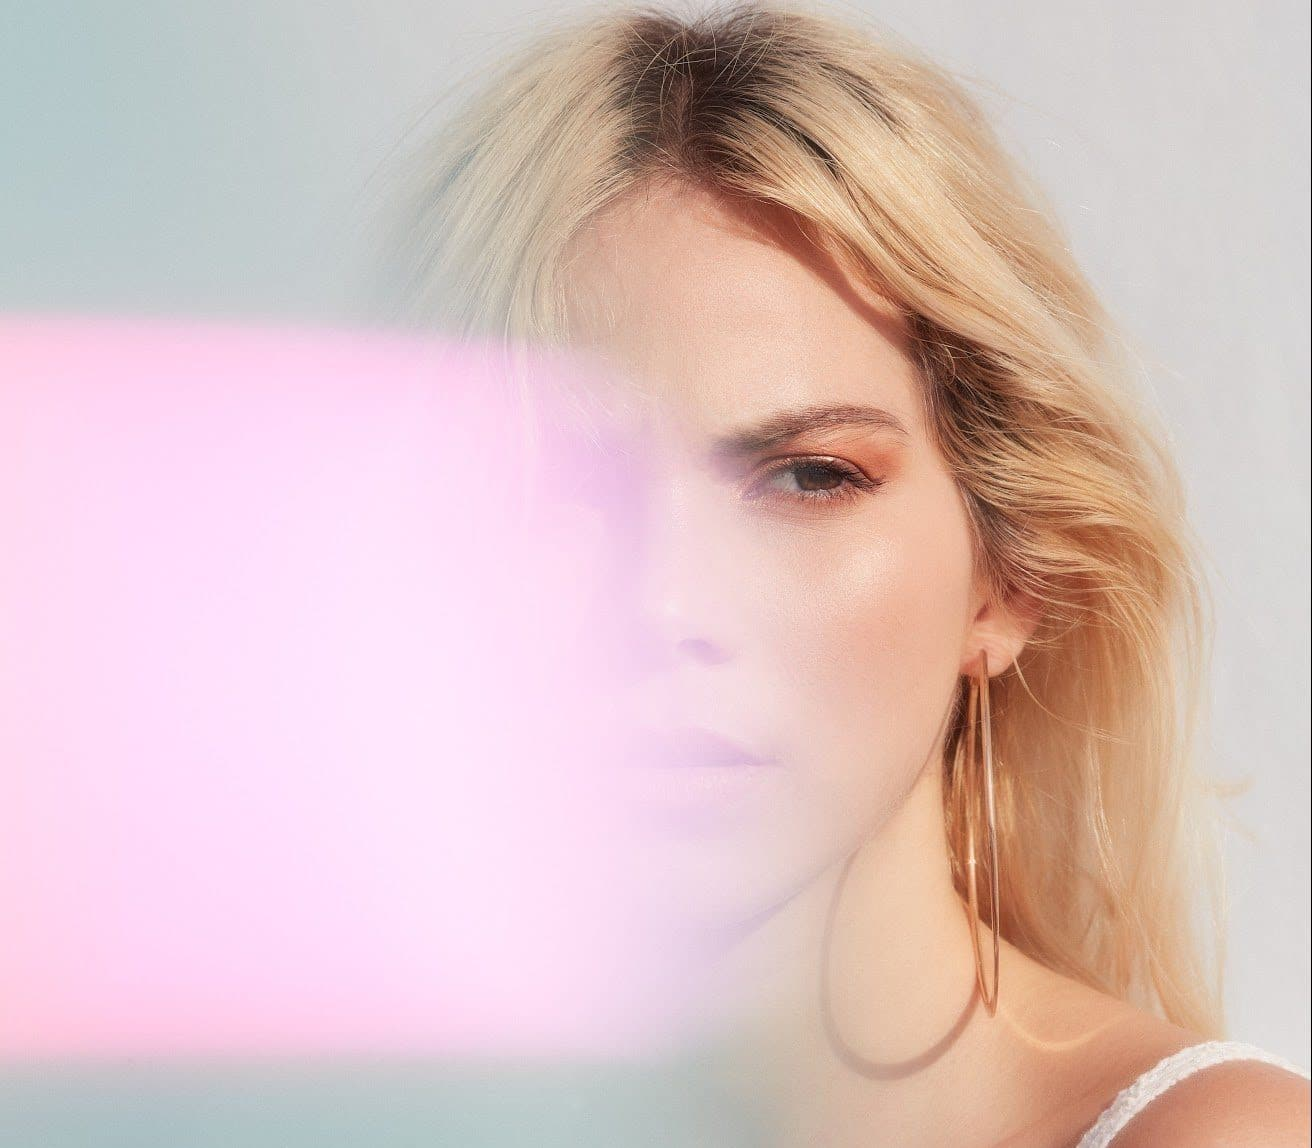 portrait-of-blonde-woman-with-pink-lens-flare-covering-half-of-her-face